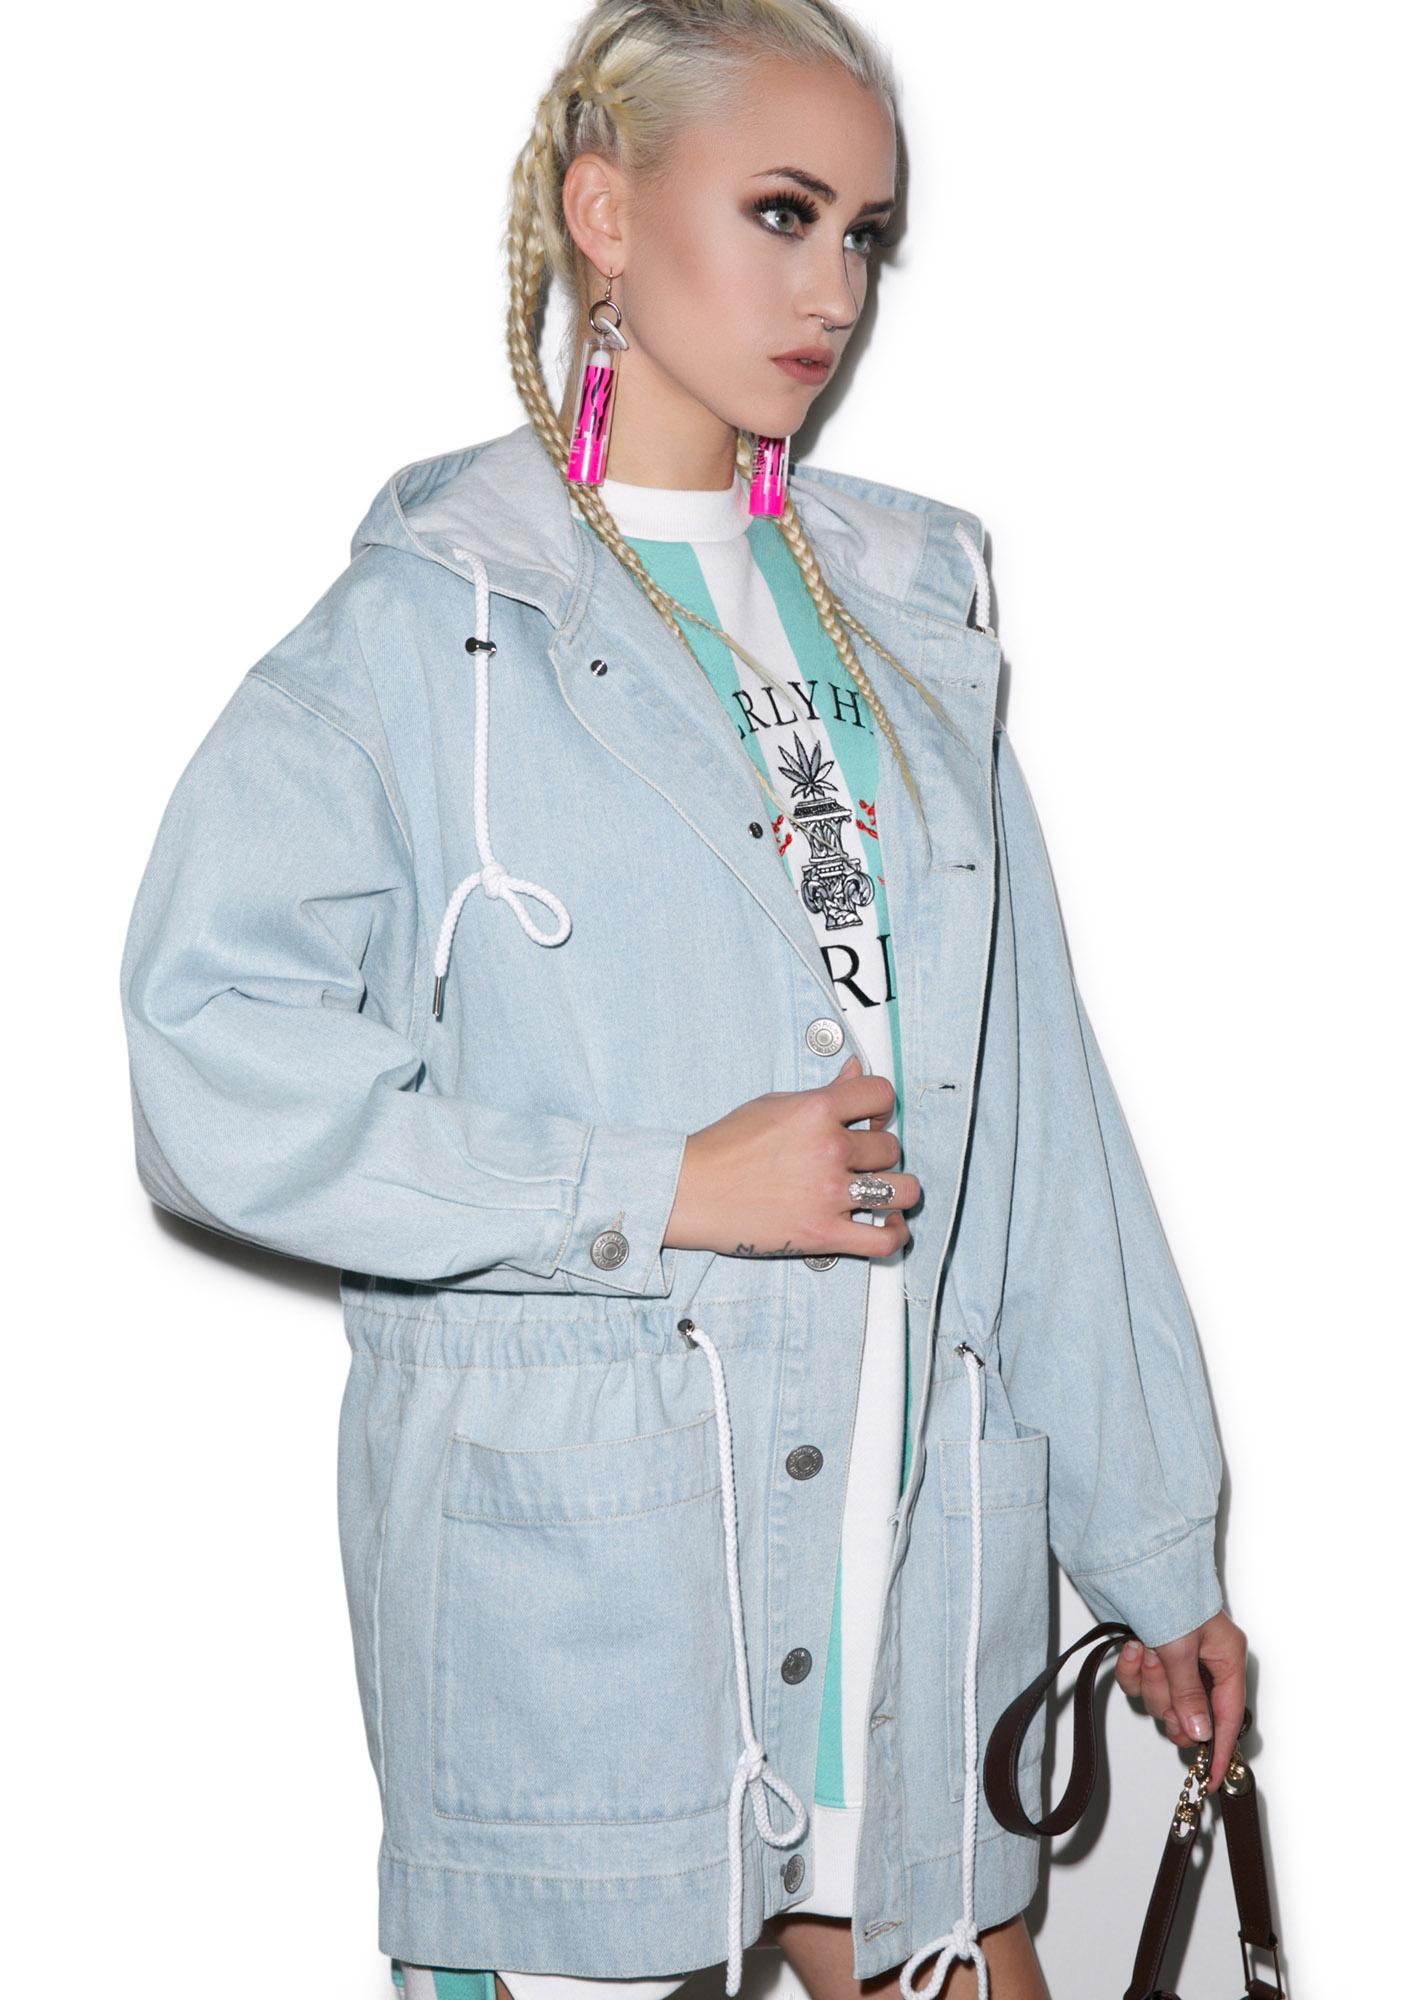 Joyrich High Beverly Hills Denim Coat